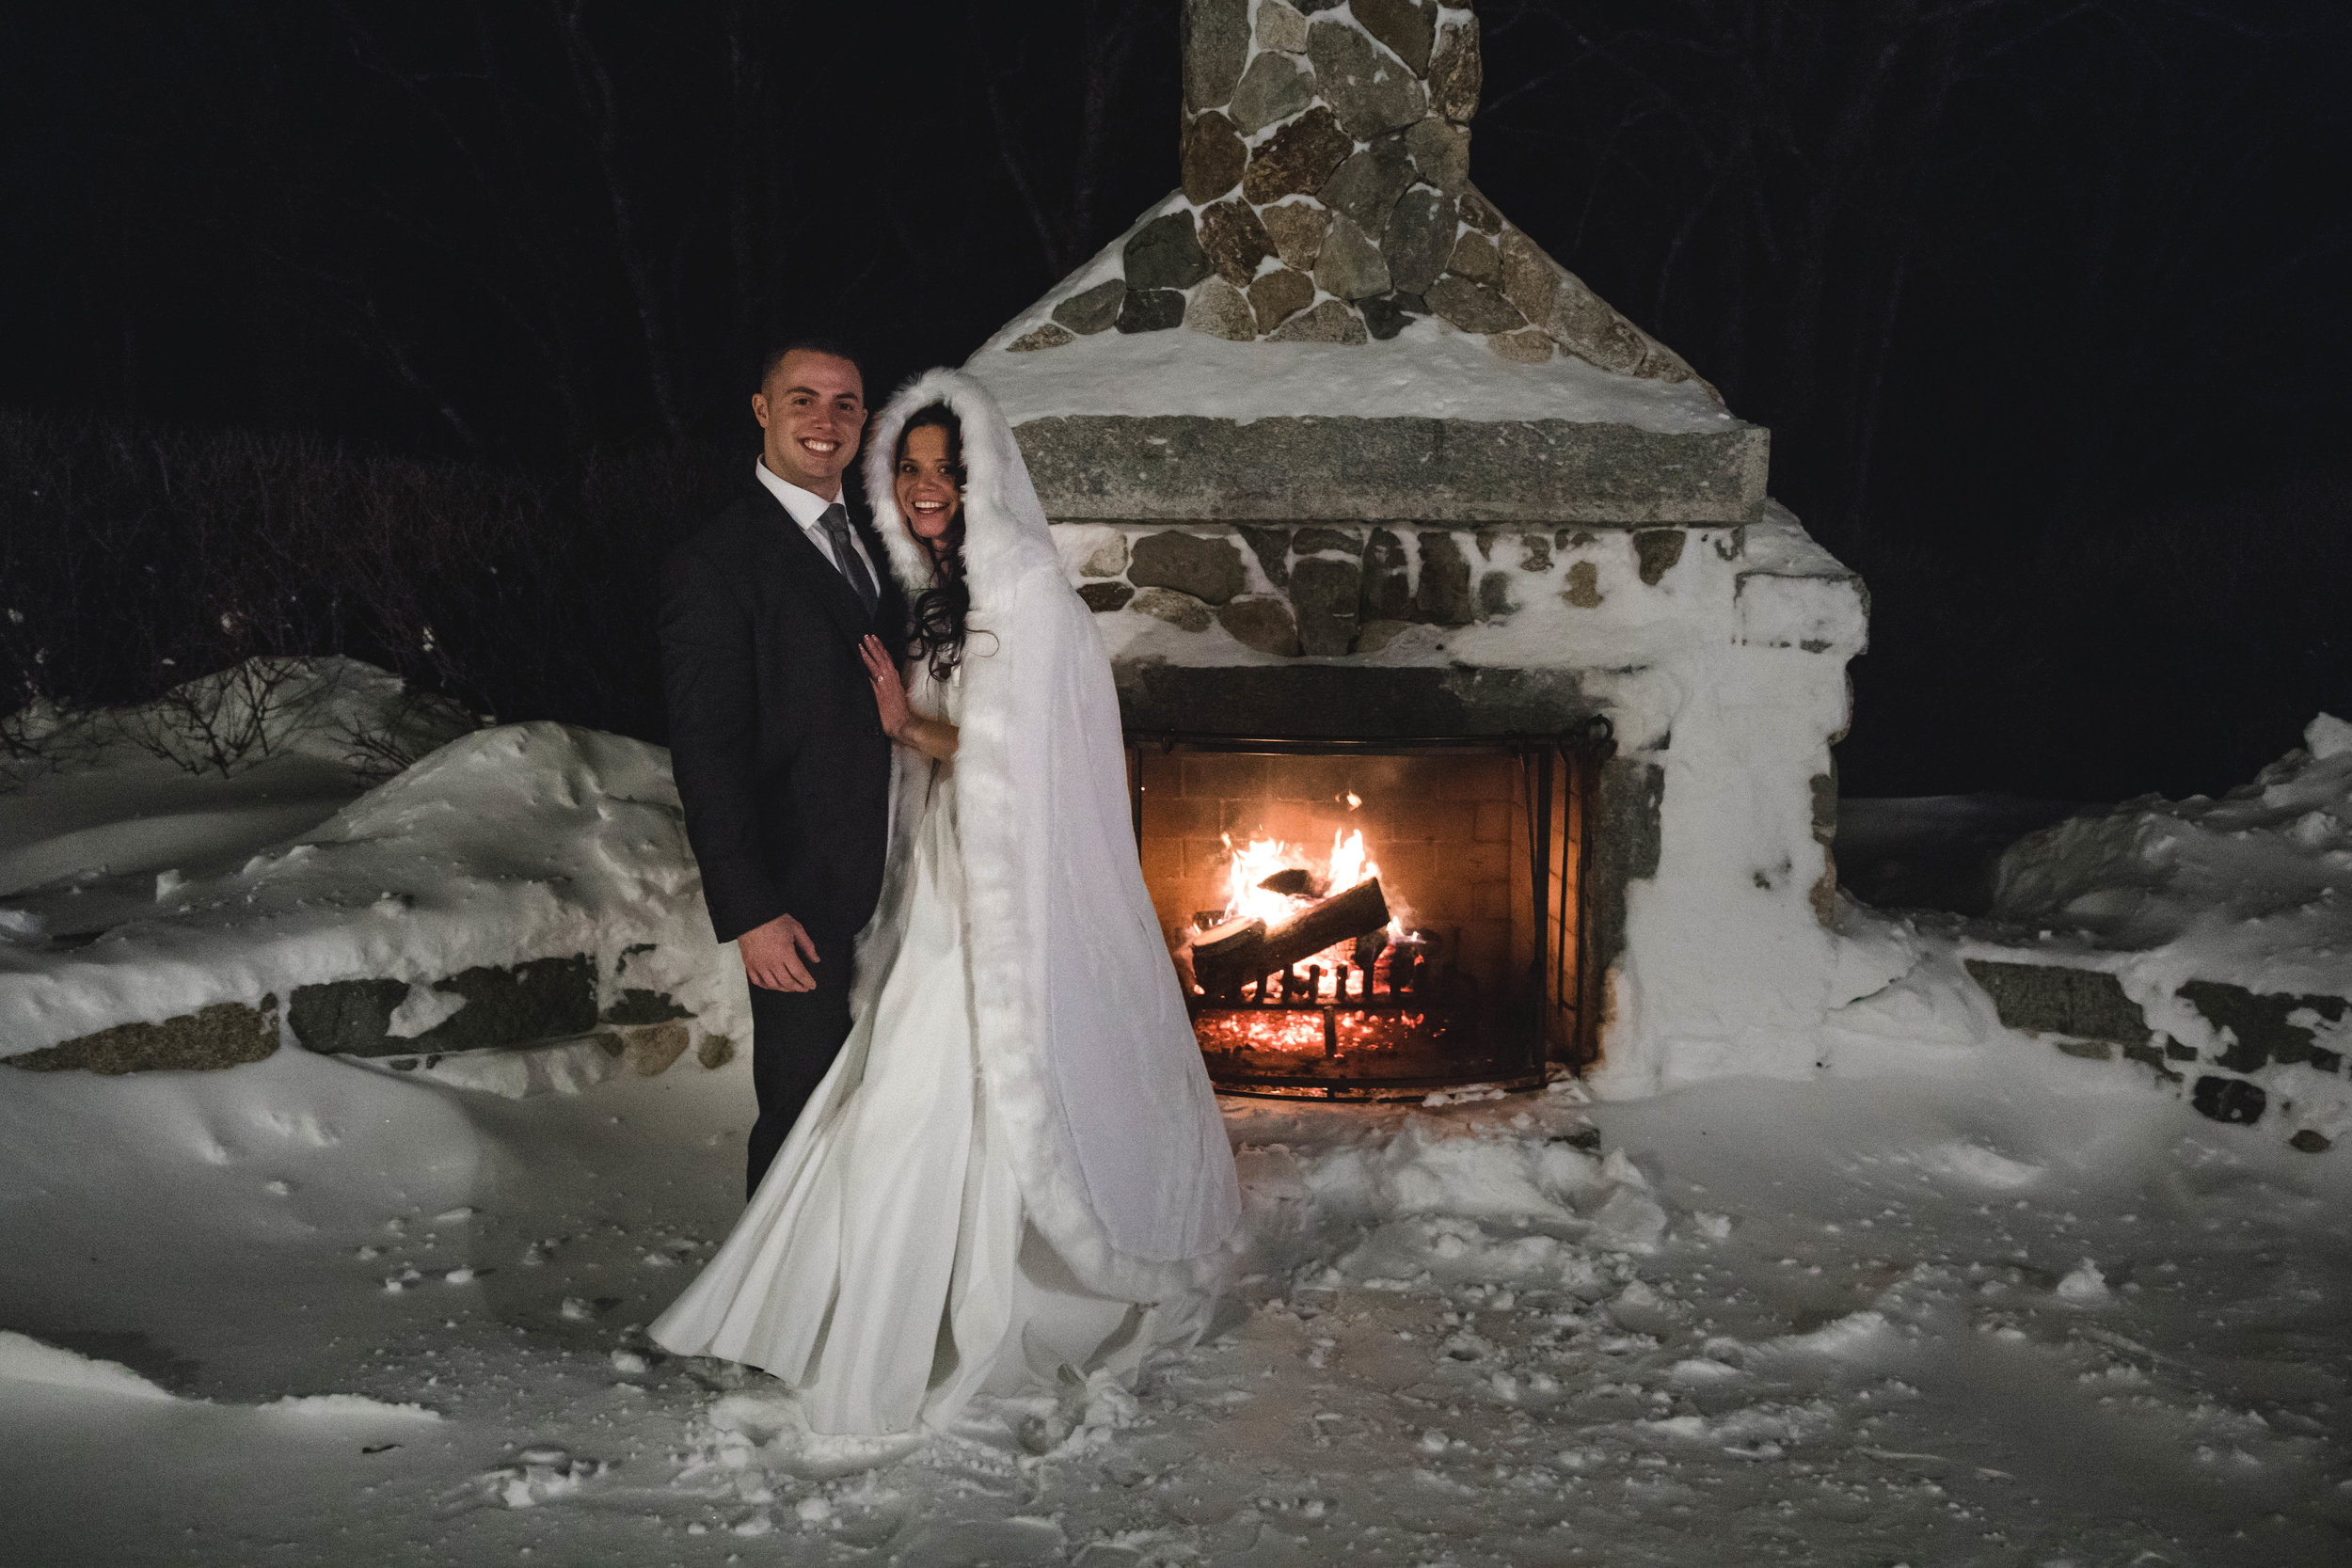 bride and groom at outdoor fireplace at Harrington Farm January wedding